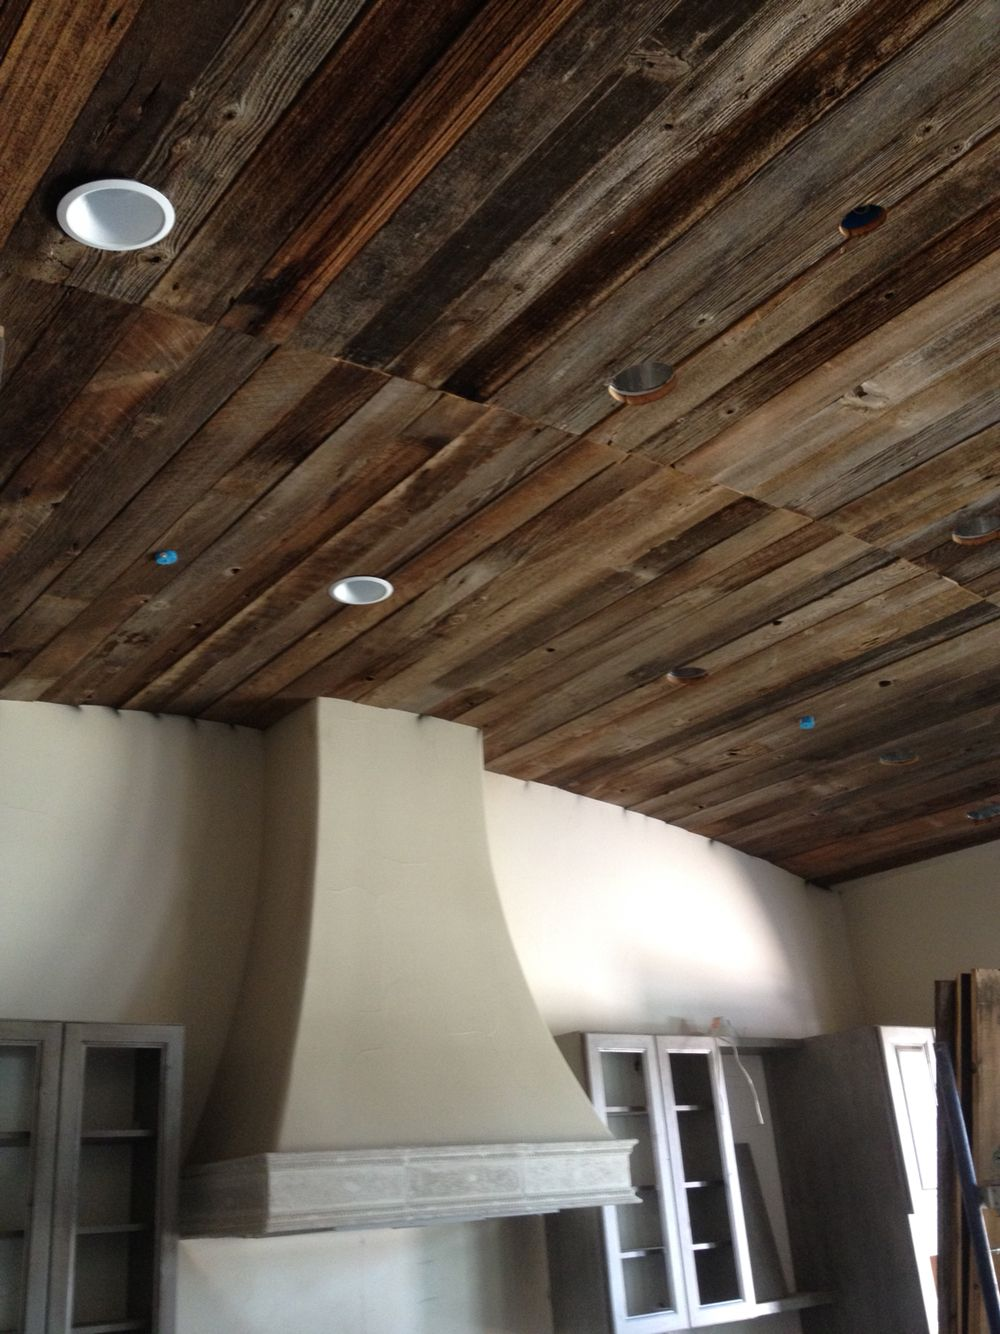 Reclaimed Barn Wood Used For Vaulted Kitchen Ceiling By California Cabinets  In Fresno, CA